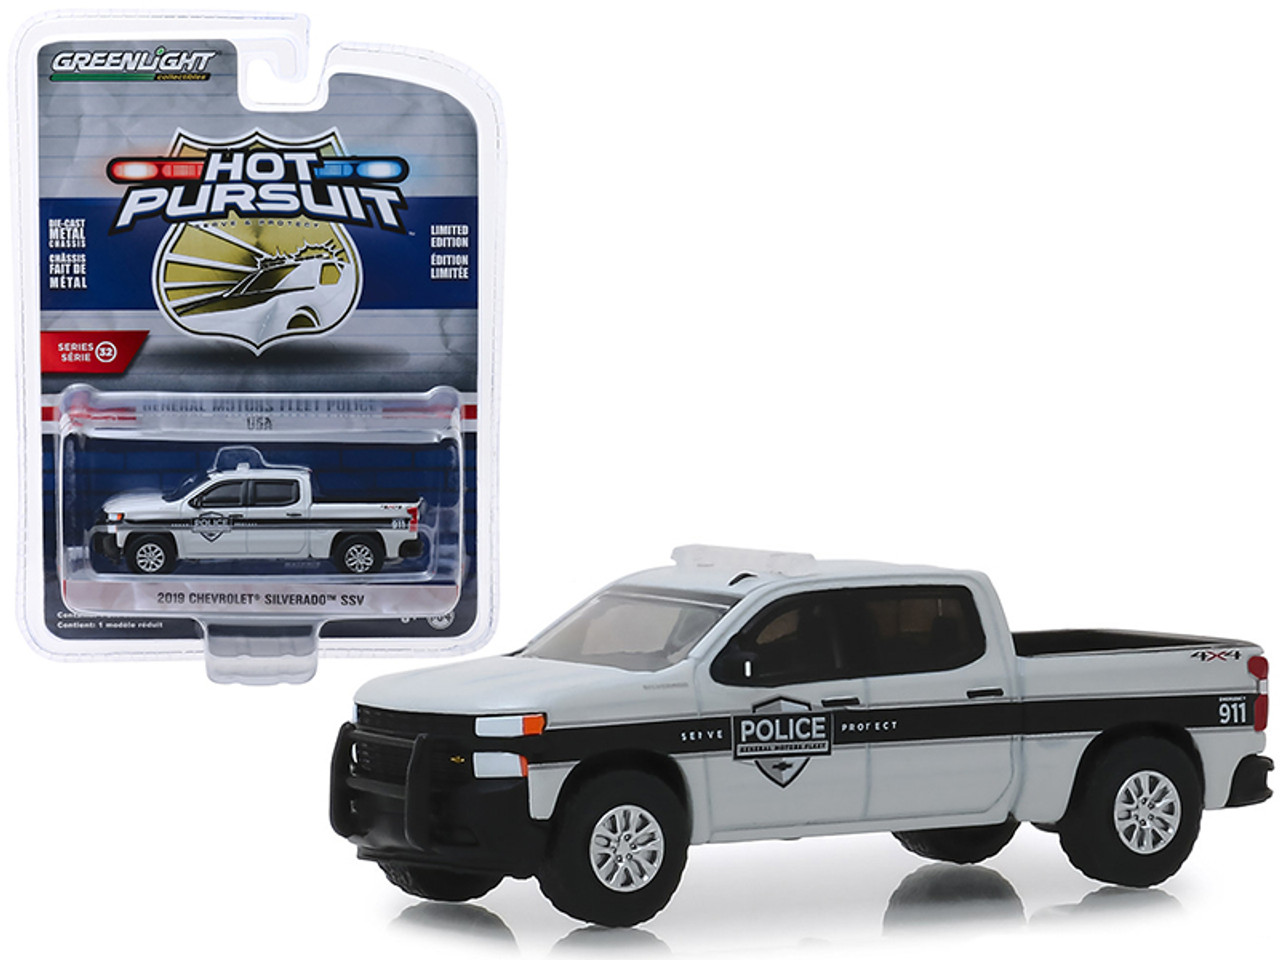 2019 Chevrolet Silverado Pickup Truck AMR IndyCar Safety Team with Safety Equipment in Truck Bed 1//64 Diecast Model Car by Greenlight 30036